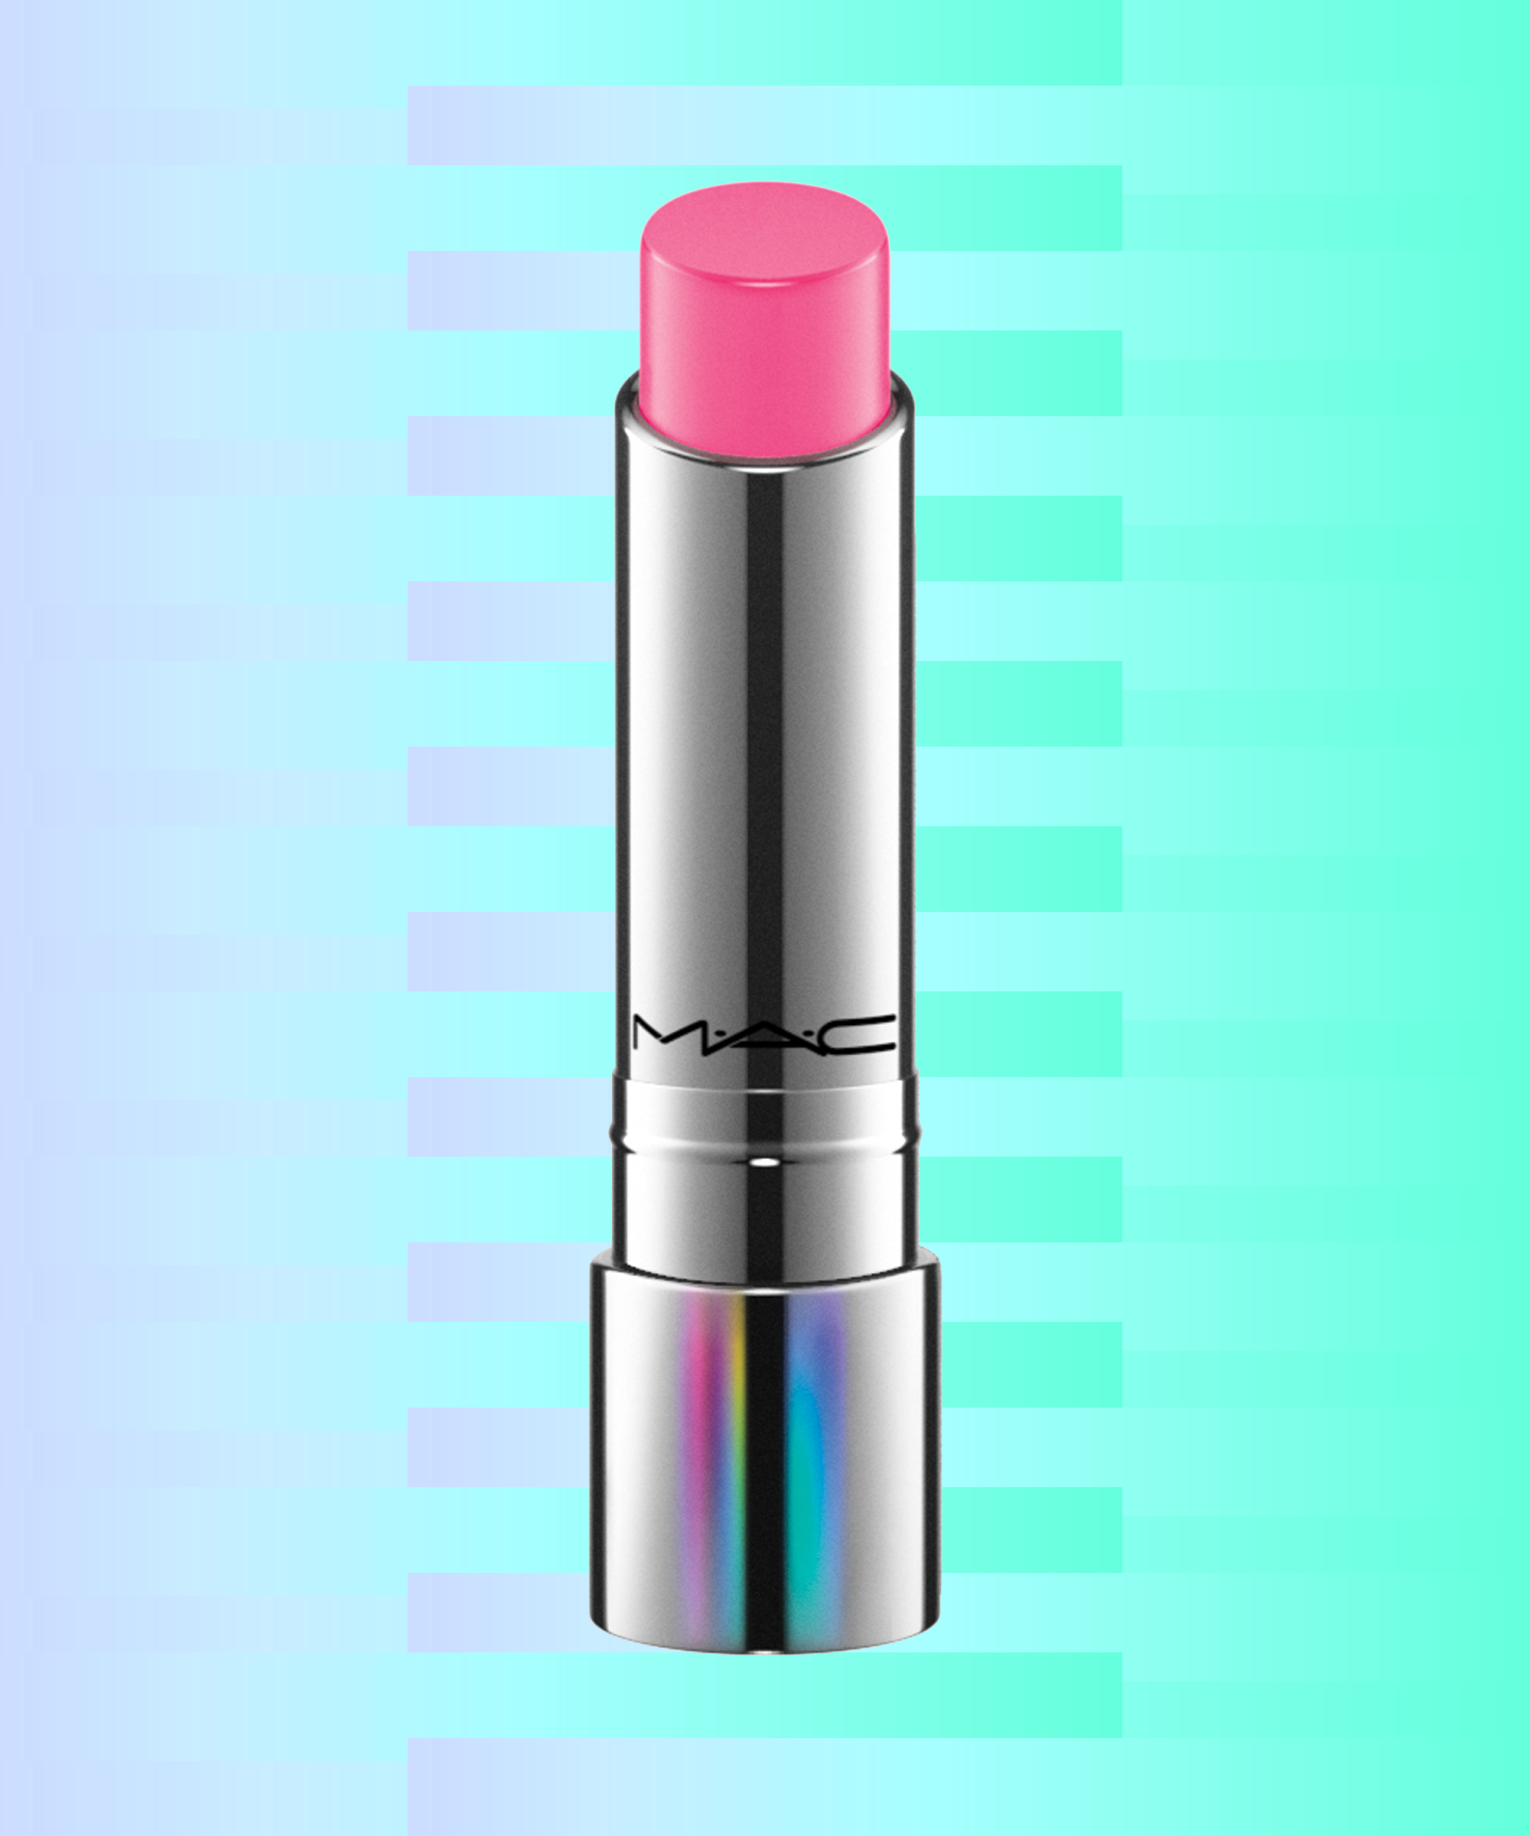 Everyone's obsessed with these mood-changing lipsticks.